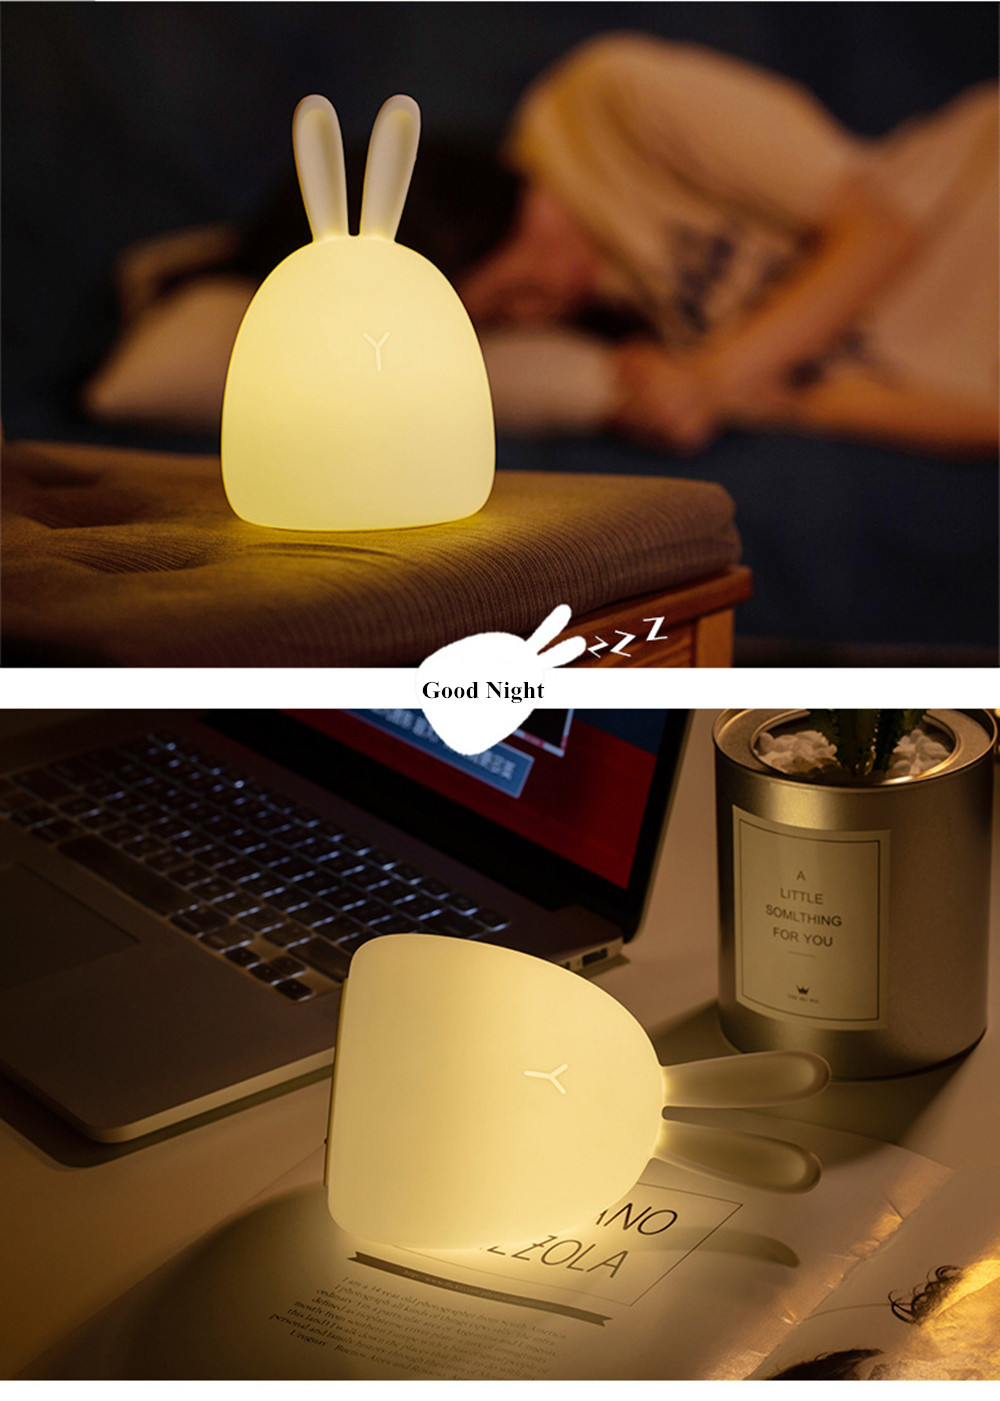 SuperNight Rabbit LED Night Light Vibration Touch Sensor Colorful USB Silicone Bunny Bedside Table Lamp for Children Kids Baby (3)